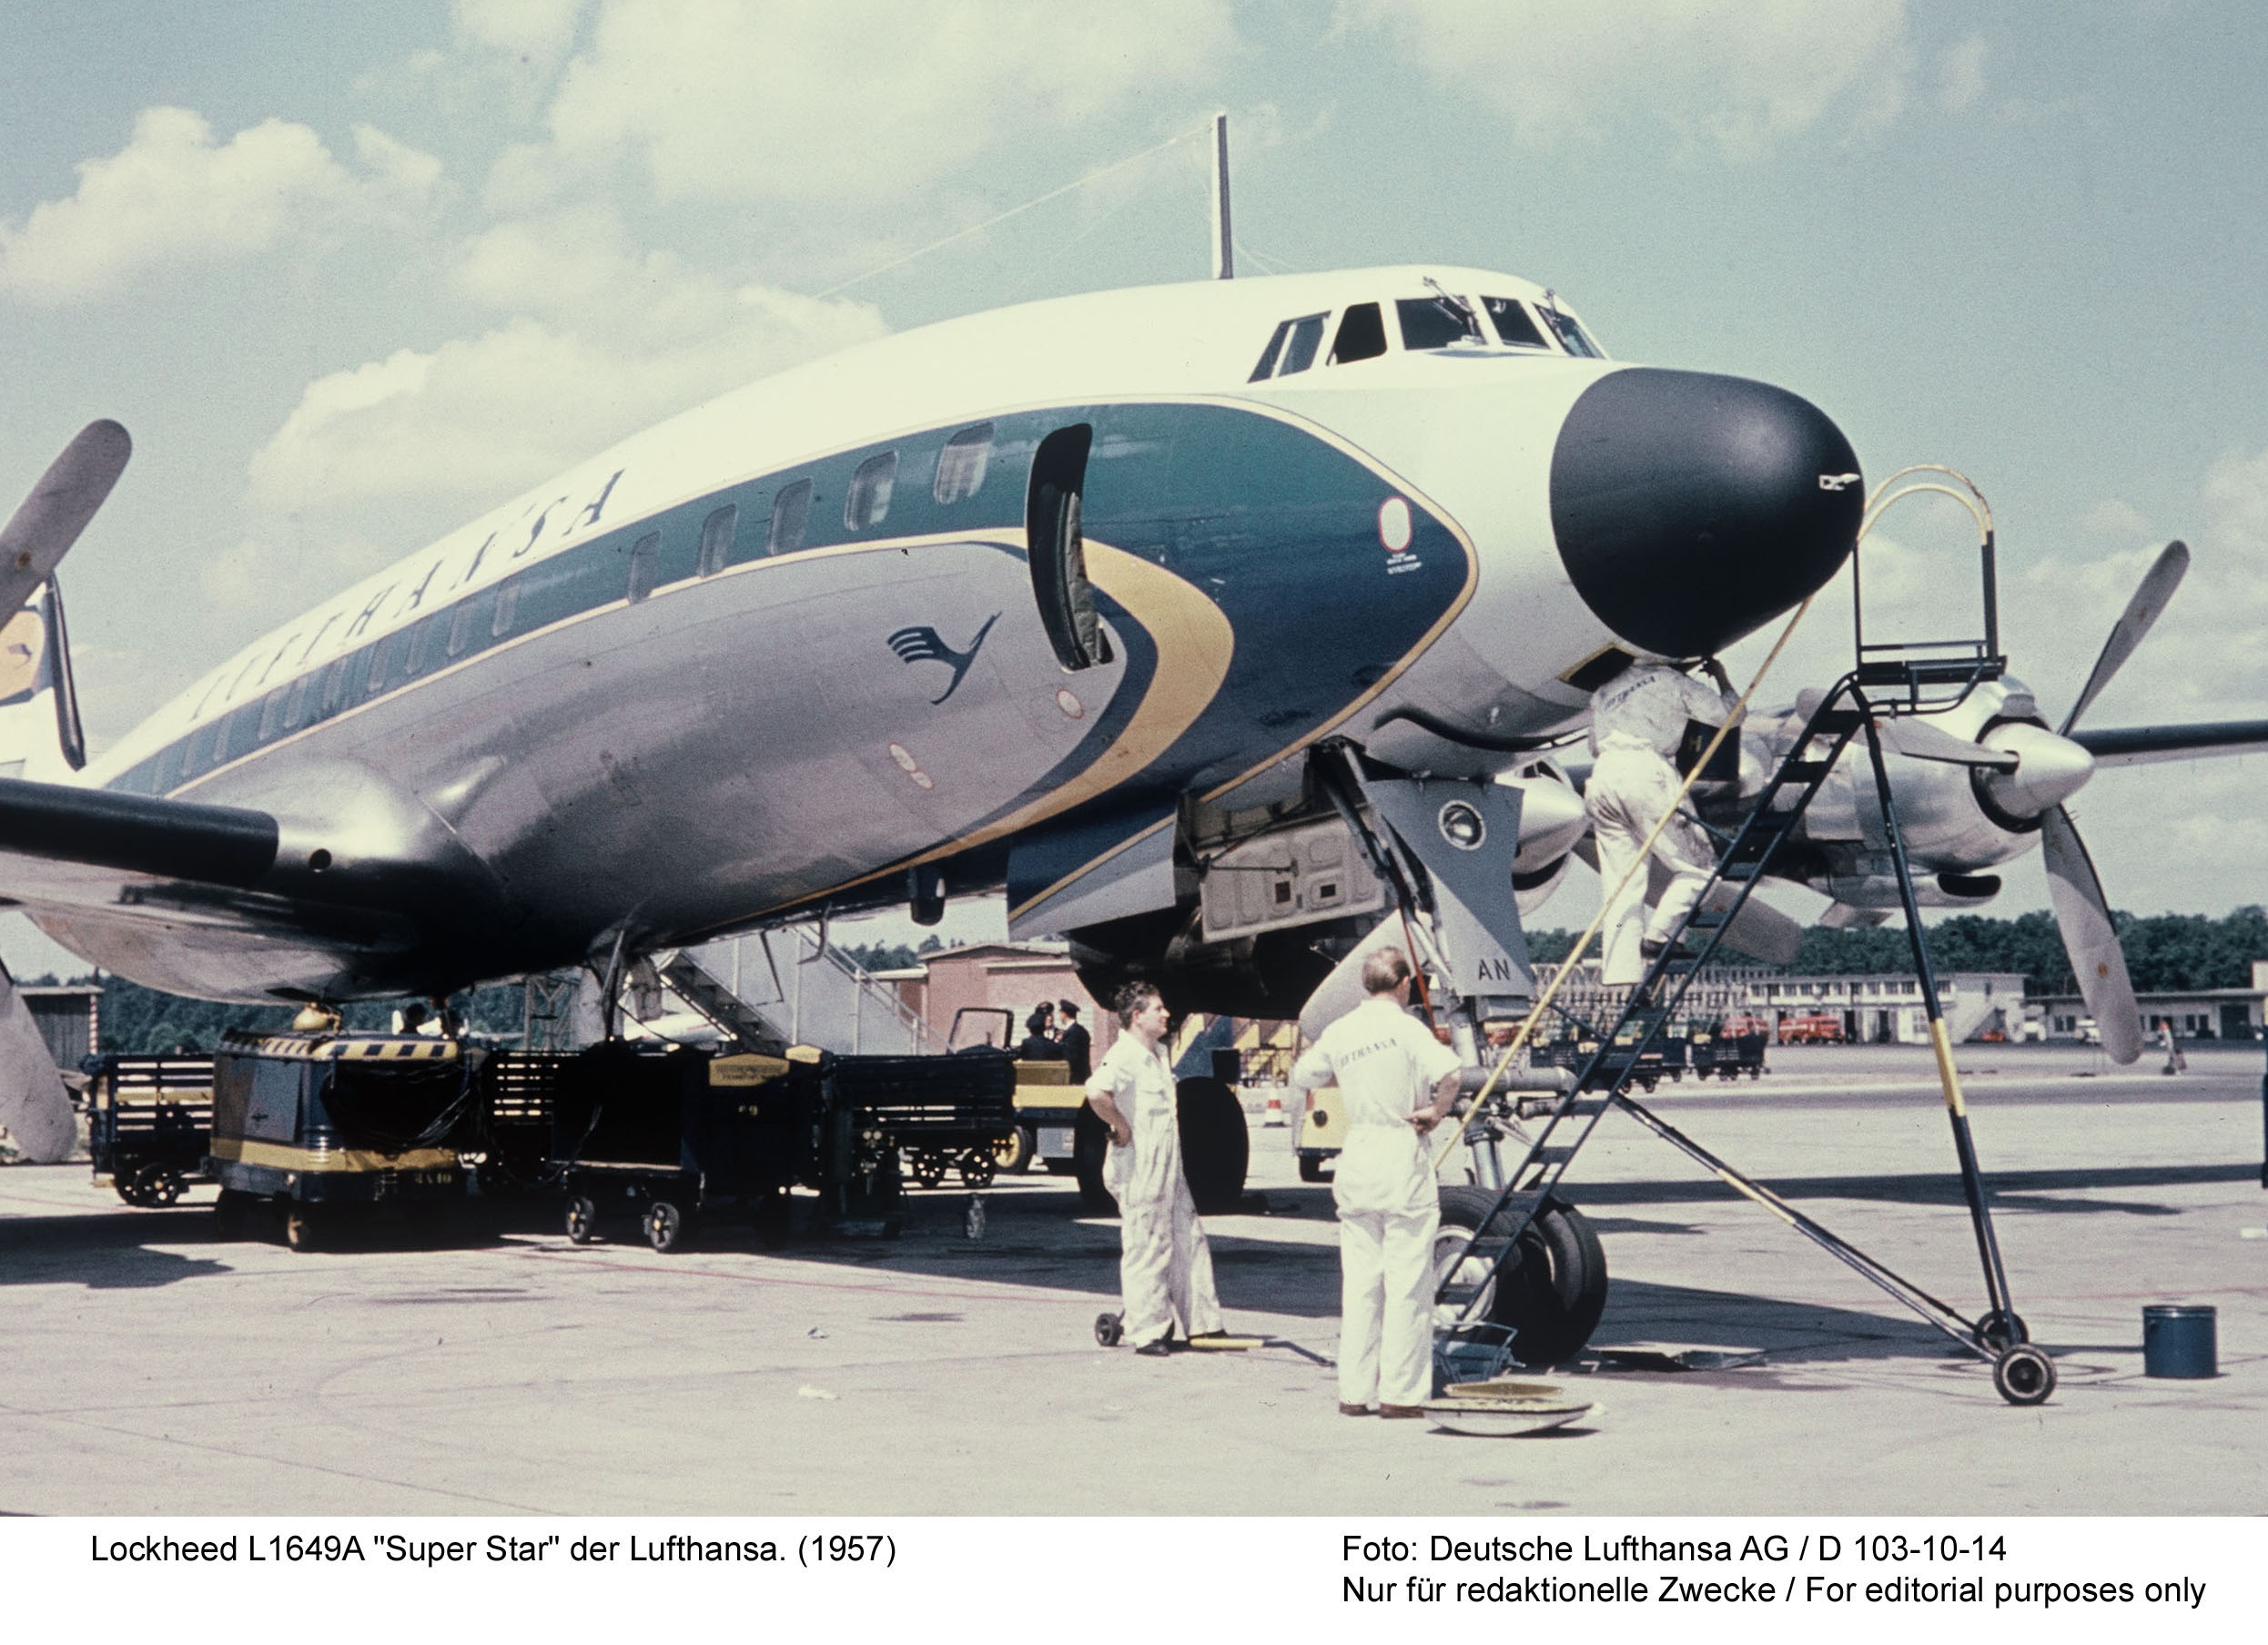 Lockheed L-1649A Super Star during the types introduction with Lufthansa in 1957. (photo via Wolfgang Bormann)